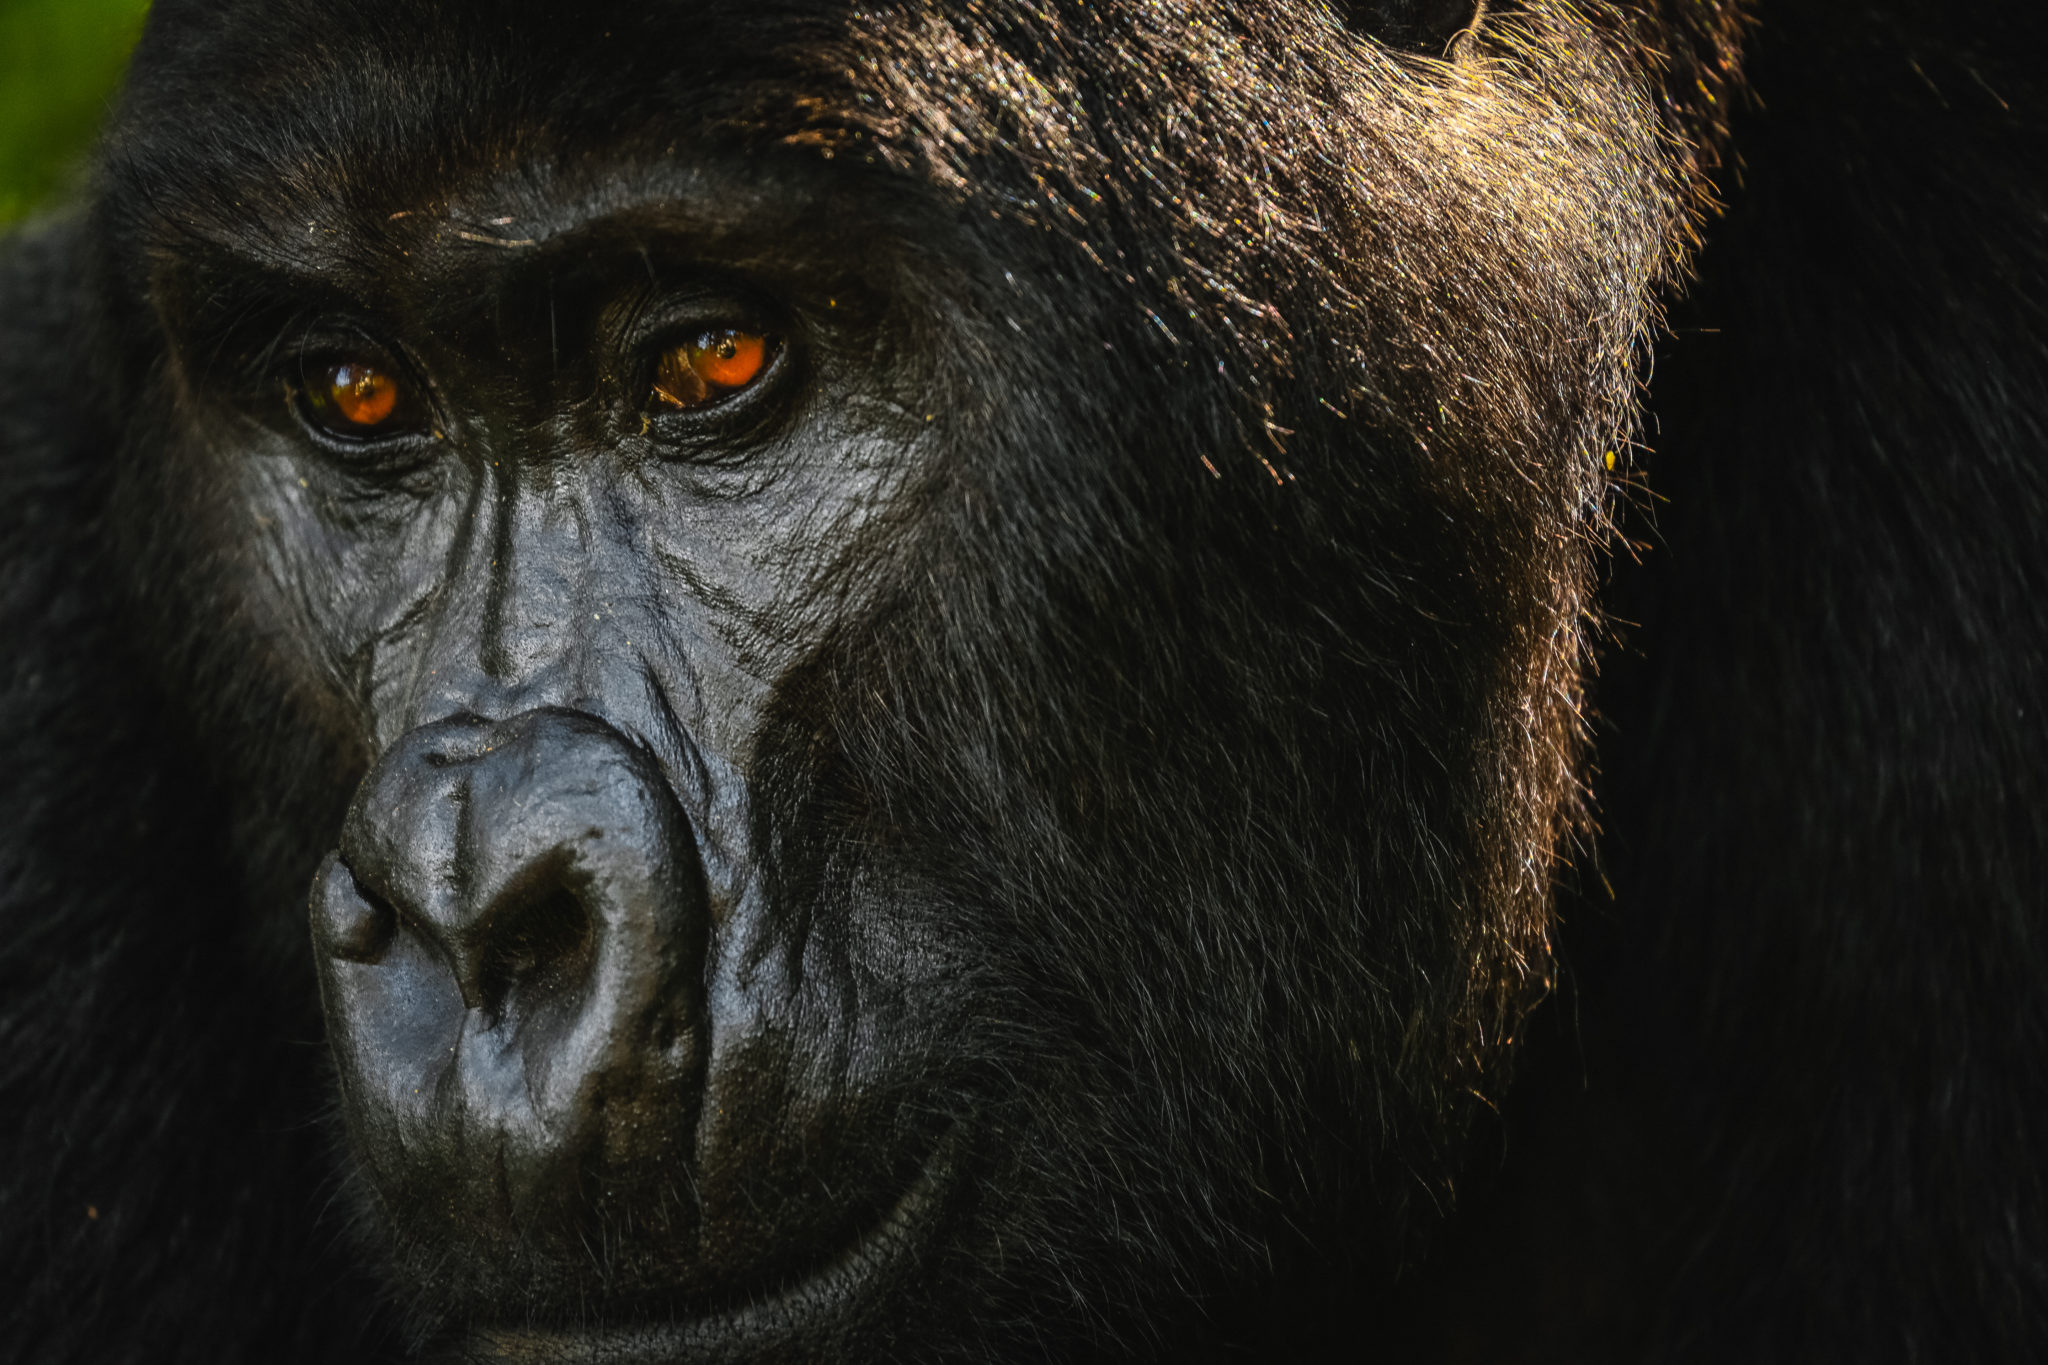 Close up of silverback mountain gorilla face